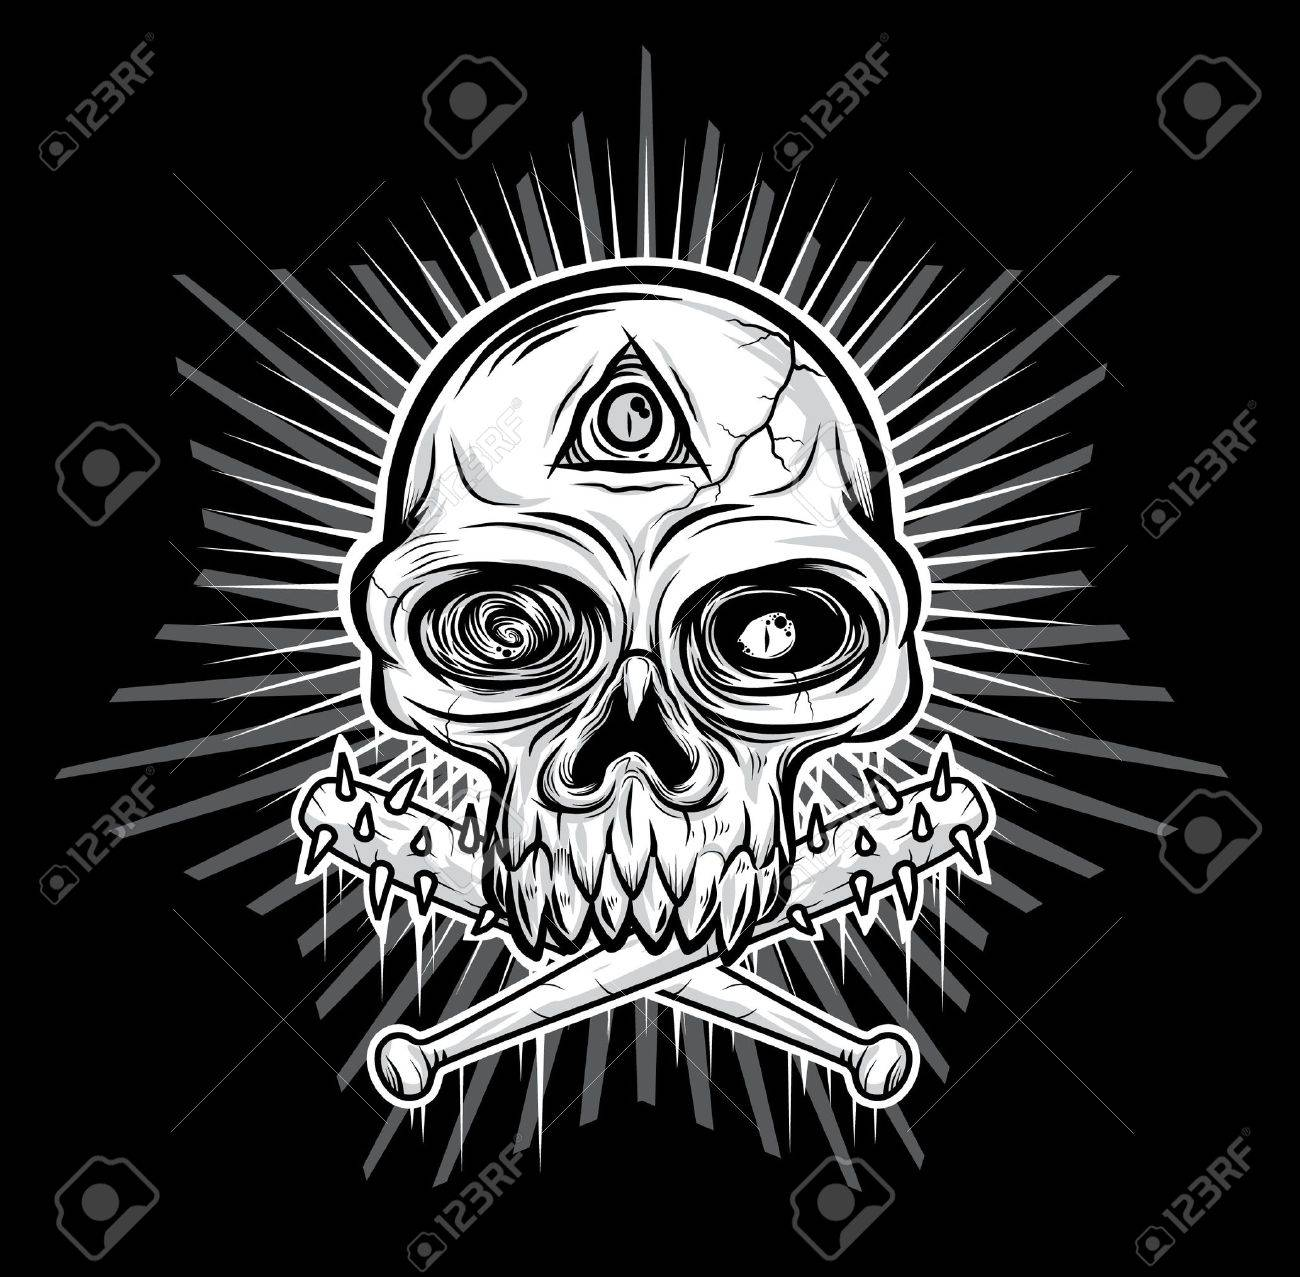 black white Skull head vector illustration Stock Vector - 11079441